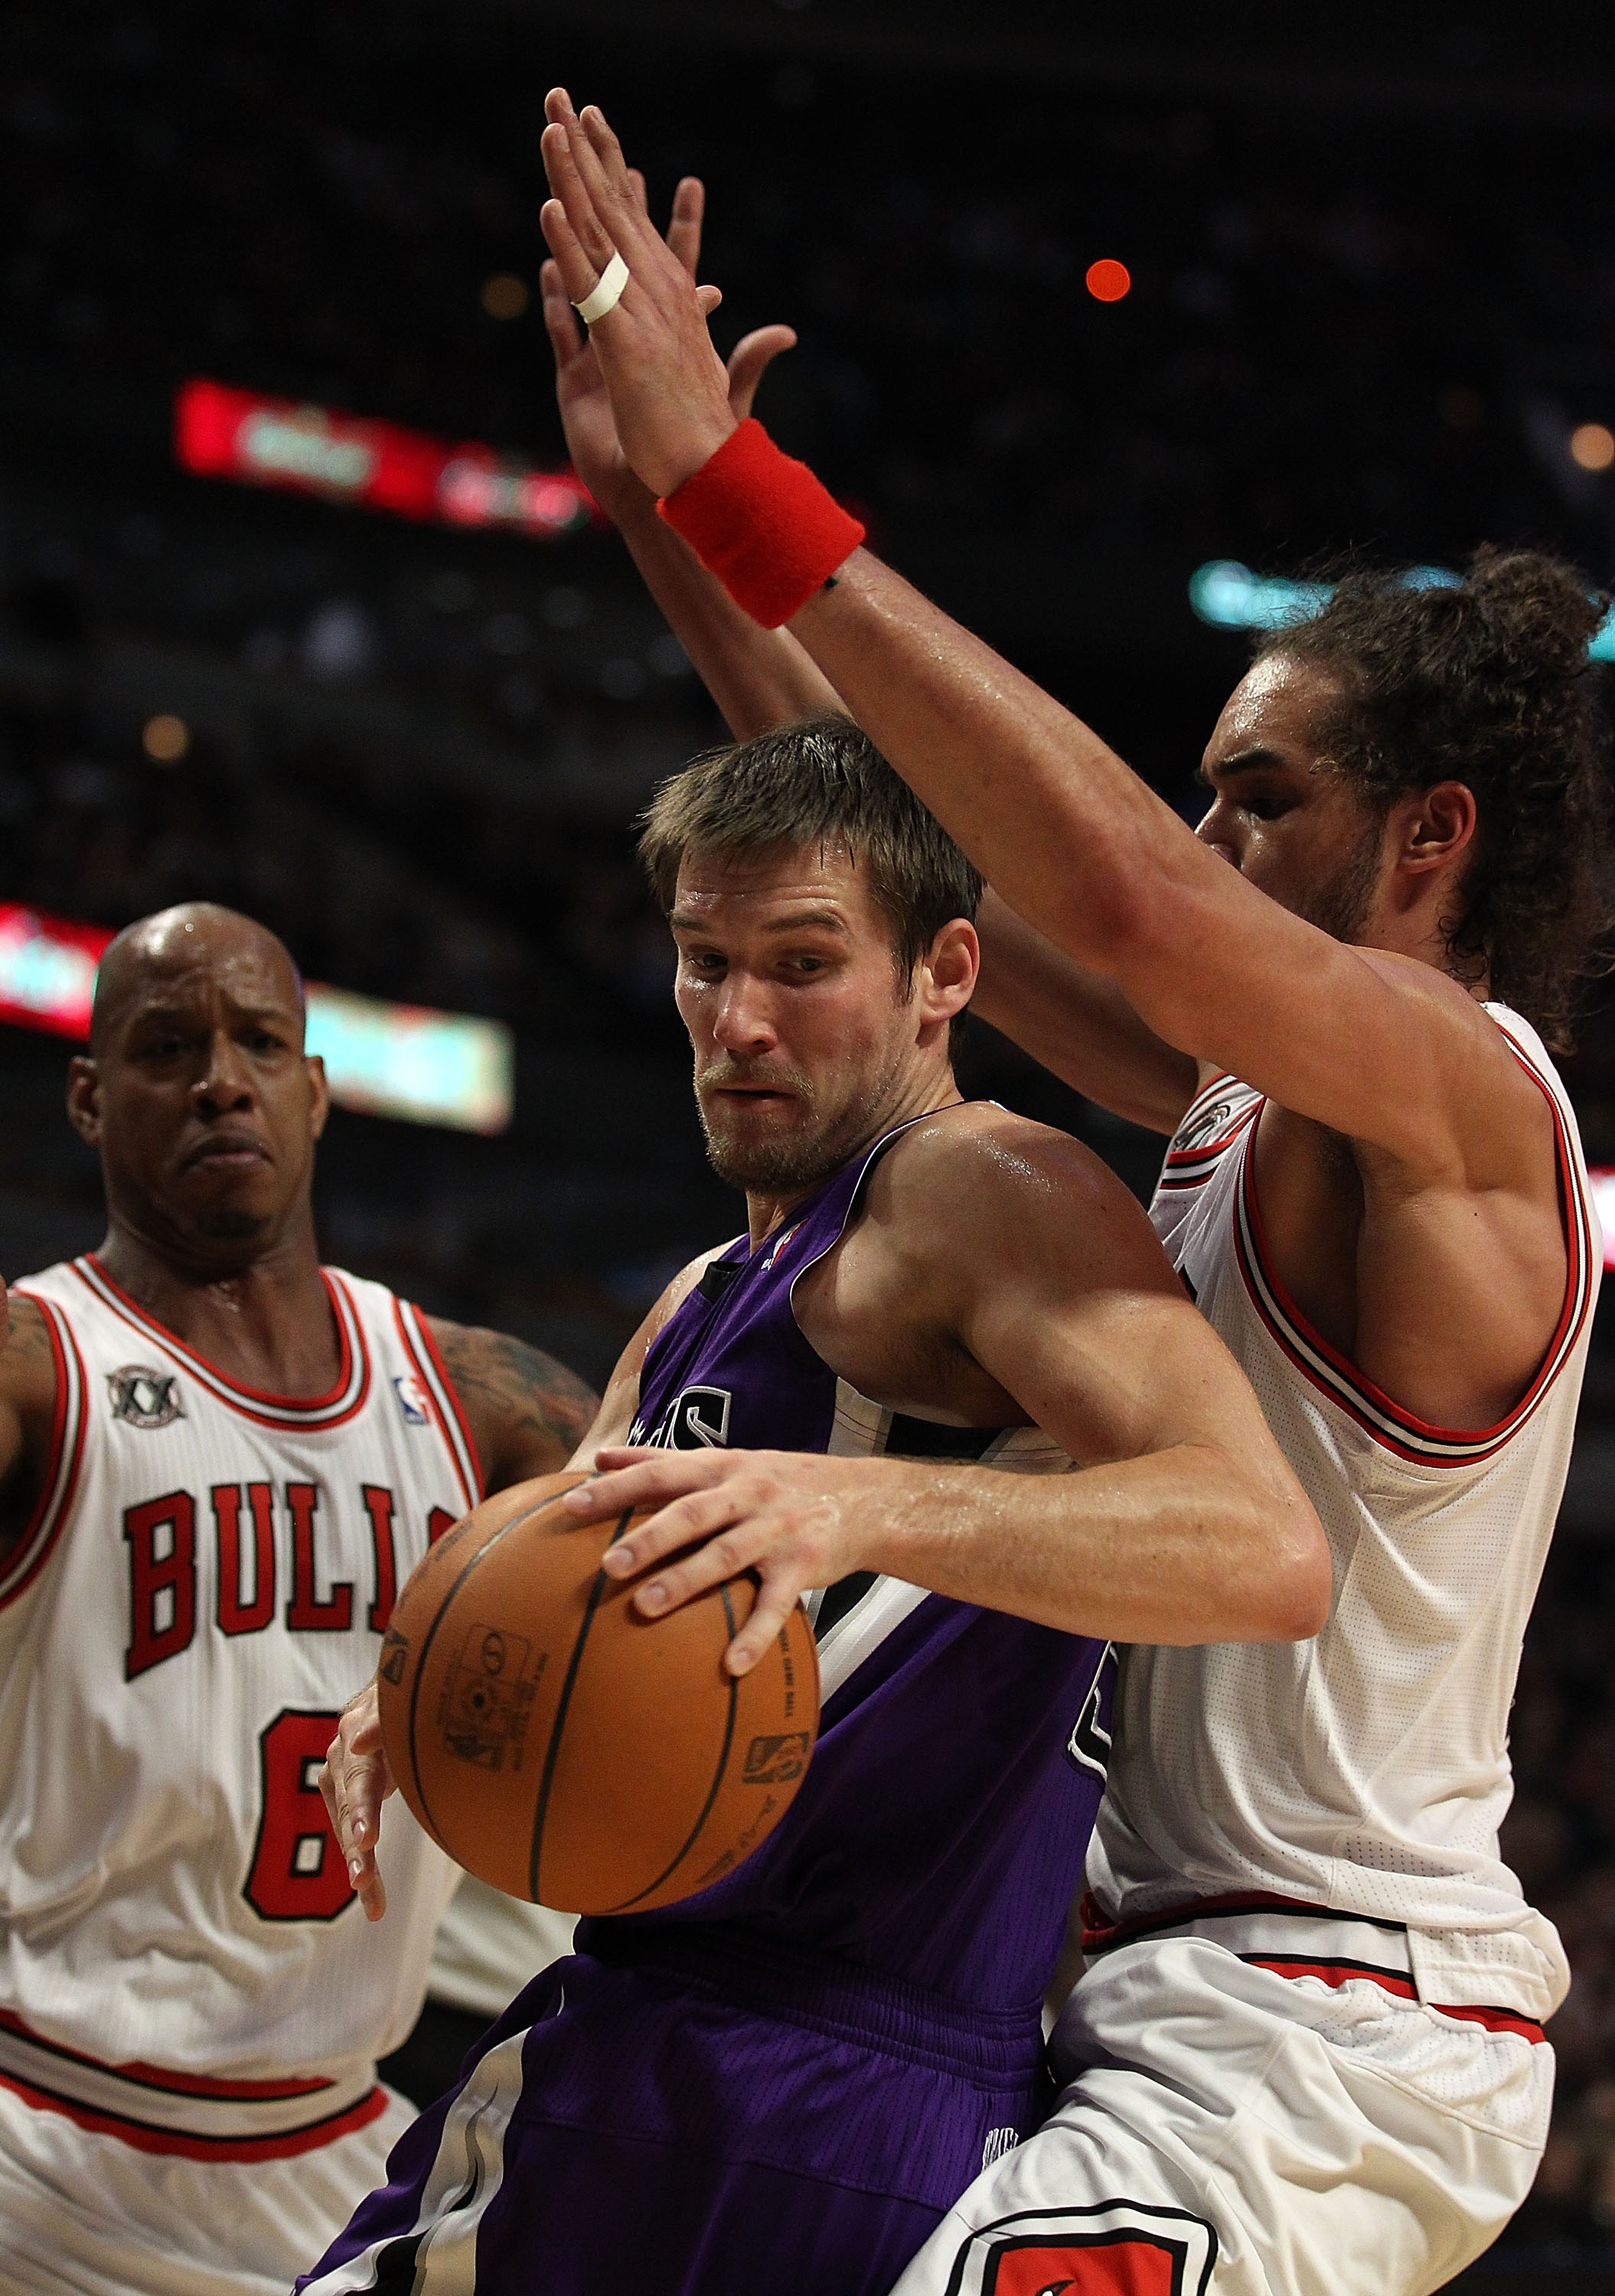 CHICAGO, IL - MARCH 21: Beno Udrih #19 of the Sacramento Kings tries to move under pressure from Joakim Noah #13 and Keith Bogans #6 of the Chicago Bulls at the United Center on March 21, 2011 in Chicago, Illinois. The Bulls defeated the Kings 132-92. NOT